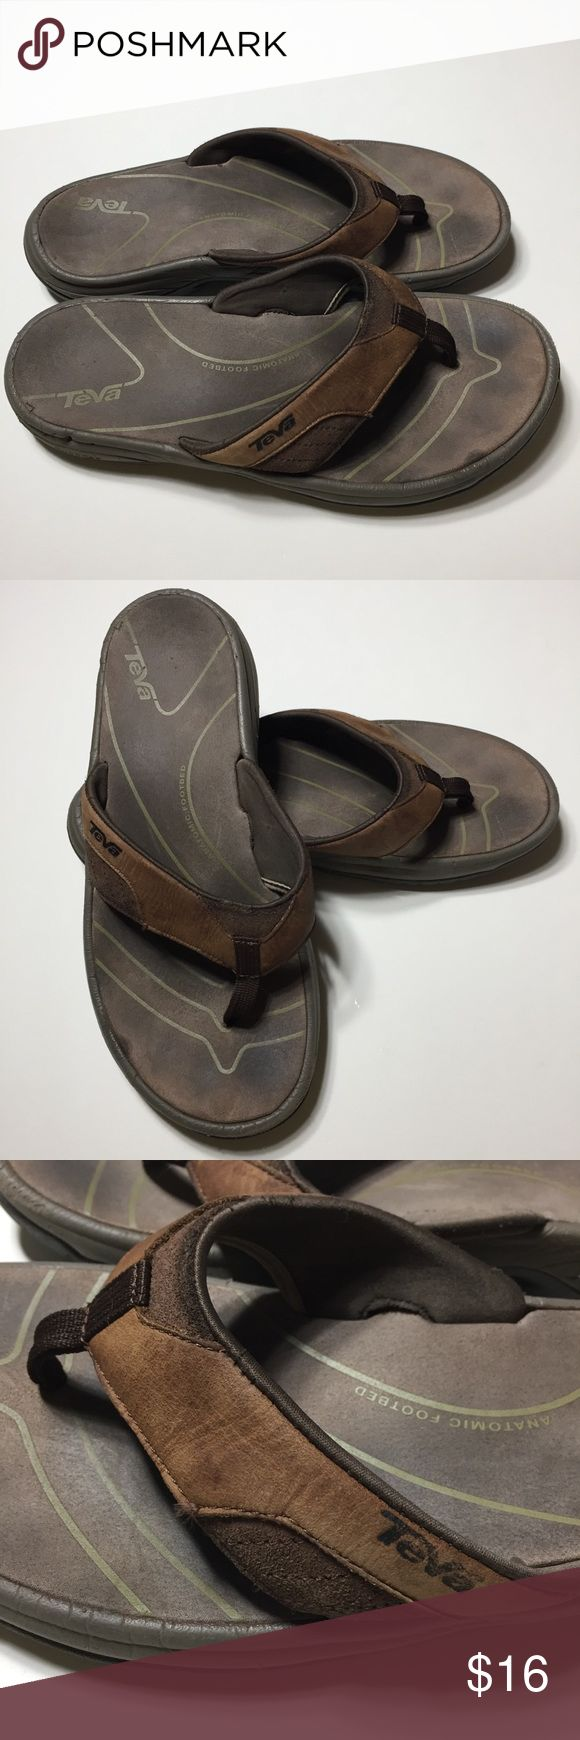 Teva Men's Leather Flip Flops Size 9. Used but in functionally good condition. Teva Shoes Sandals & Flip-Flops